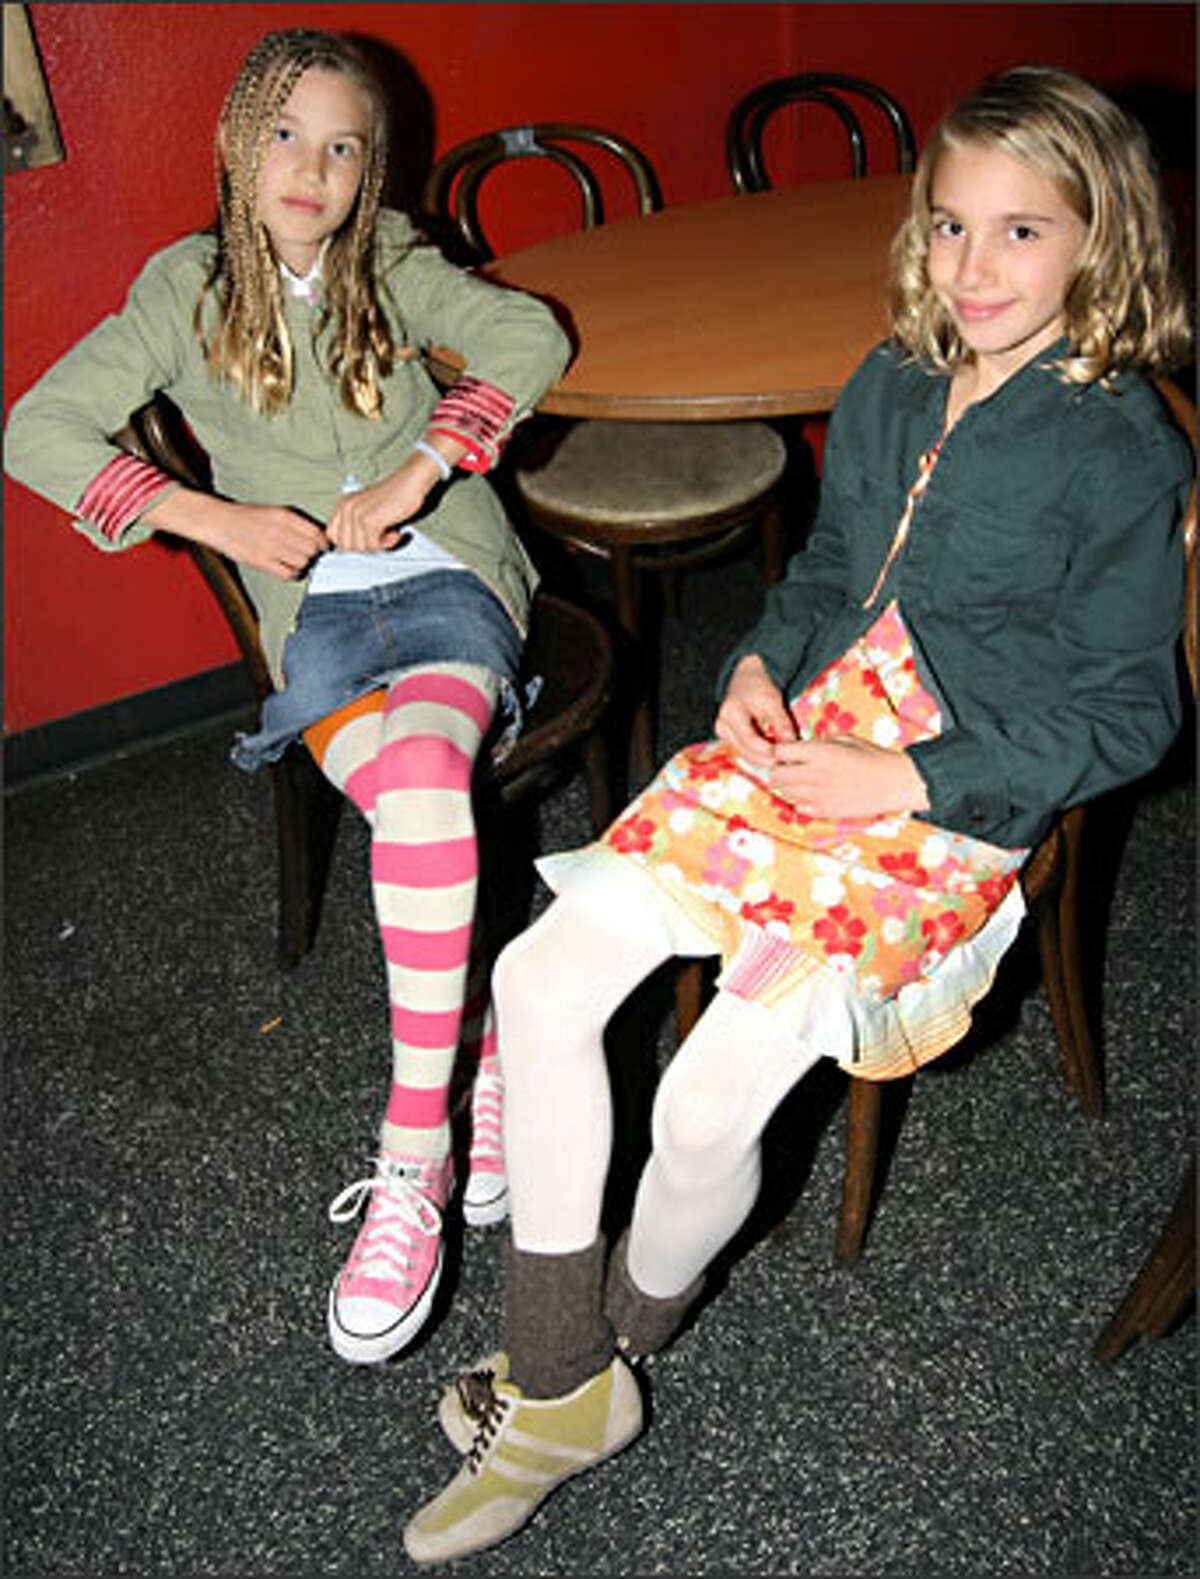 Seattle rock band Smoosh is made up of sisters Asya, 12, and Chloe, 10. Smoosh performed at The Showbox Thursday night, opening for the rock band The Presidents of the United States.